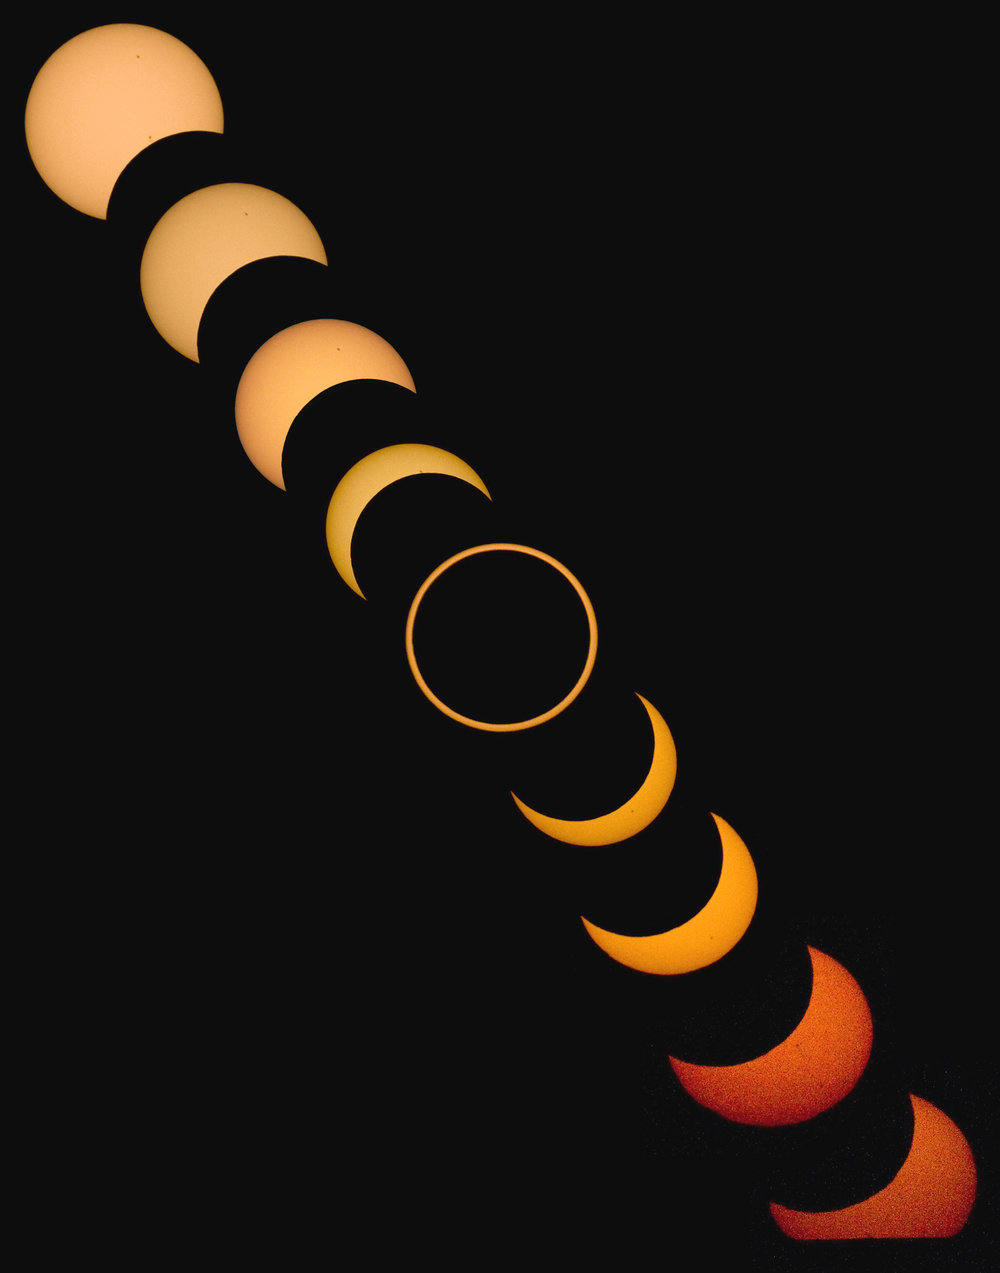 An assembled image of the annular solar eclipse as viewed from Albuquerque, NM, Sunday, May 20, 2012. At bottom right, near the end of the eclipse, the sun was setting below the horizon, which is the reason it is cut off along the bottom. (Morgan Petroski/Albuquerque Journal)